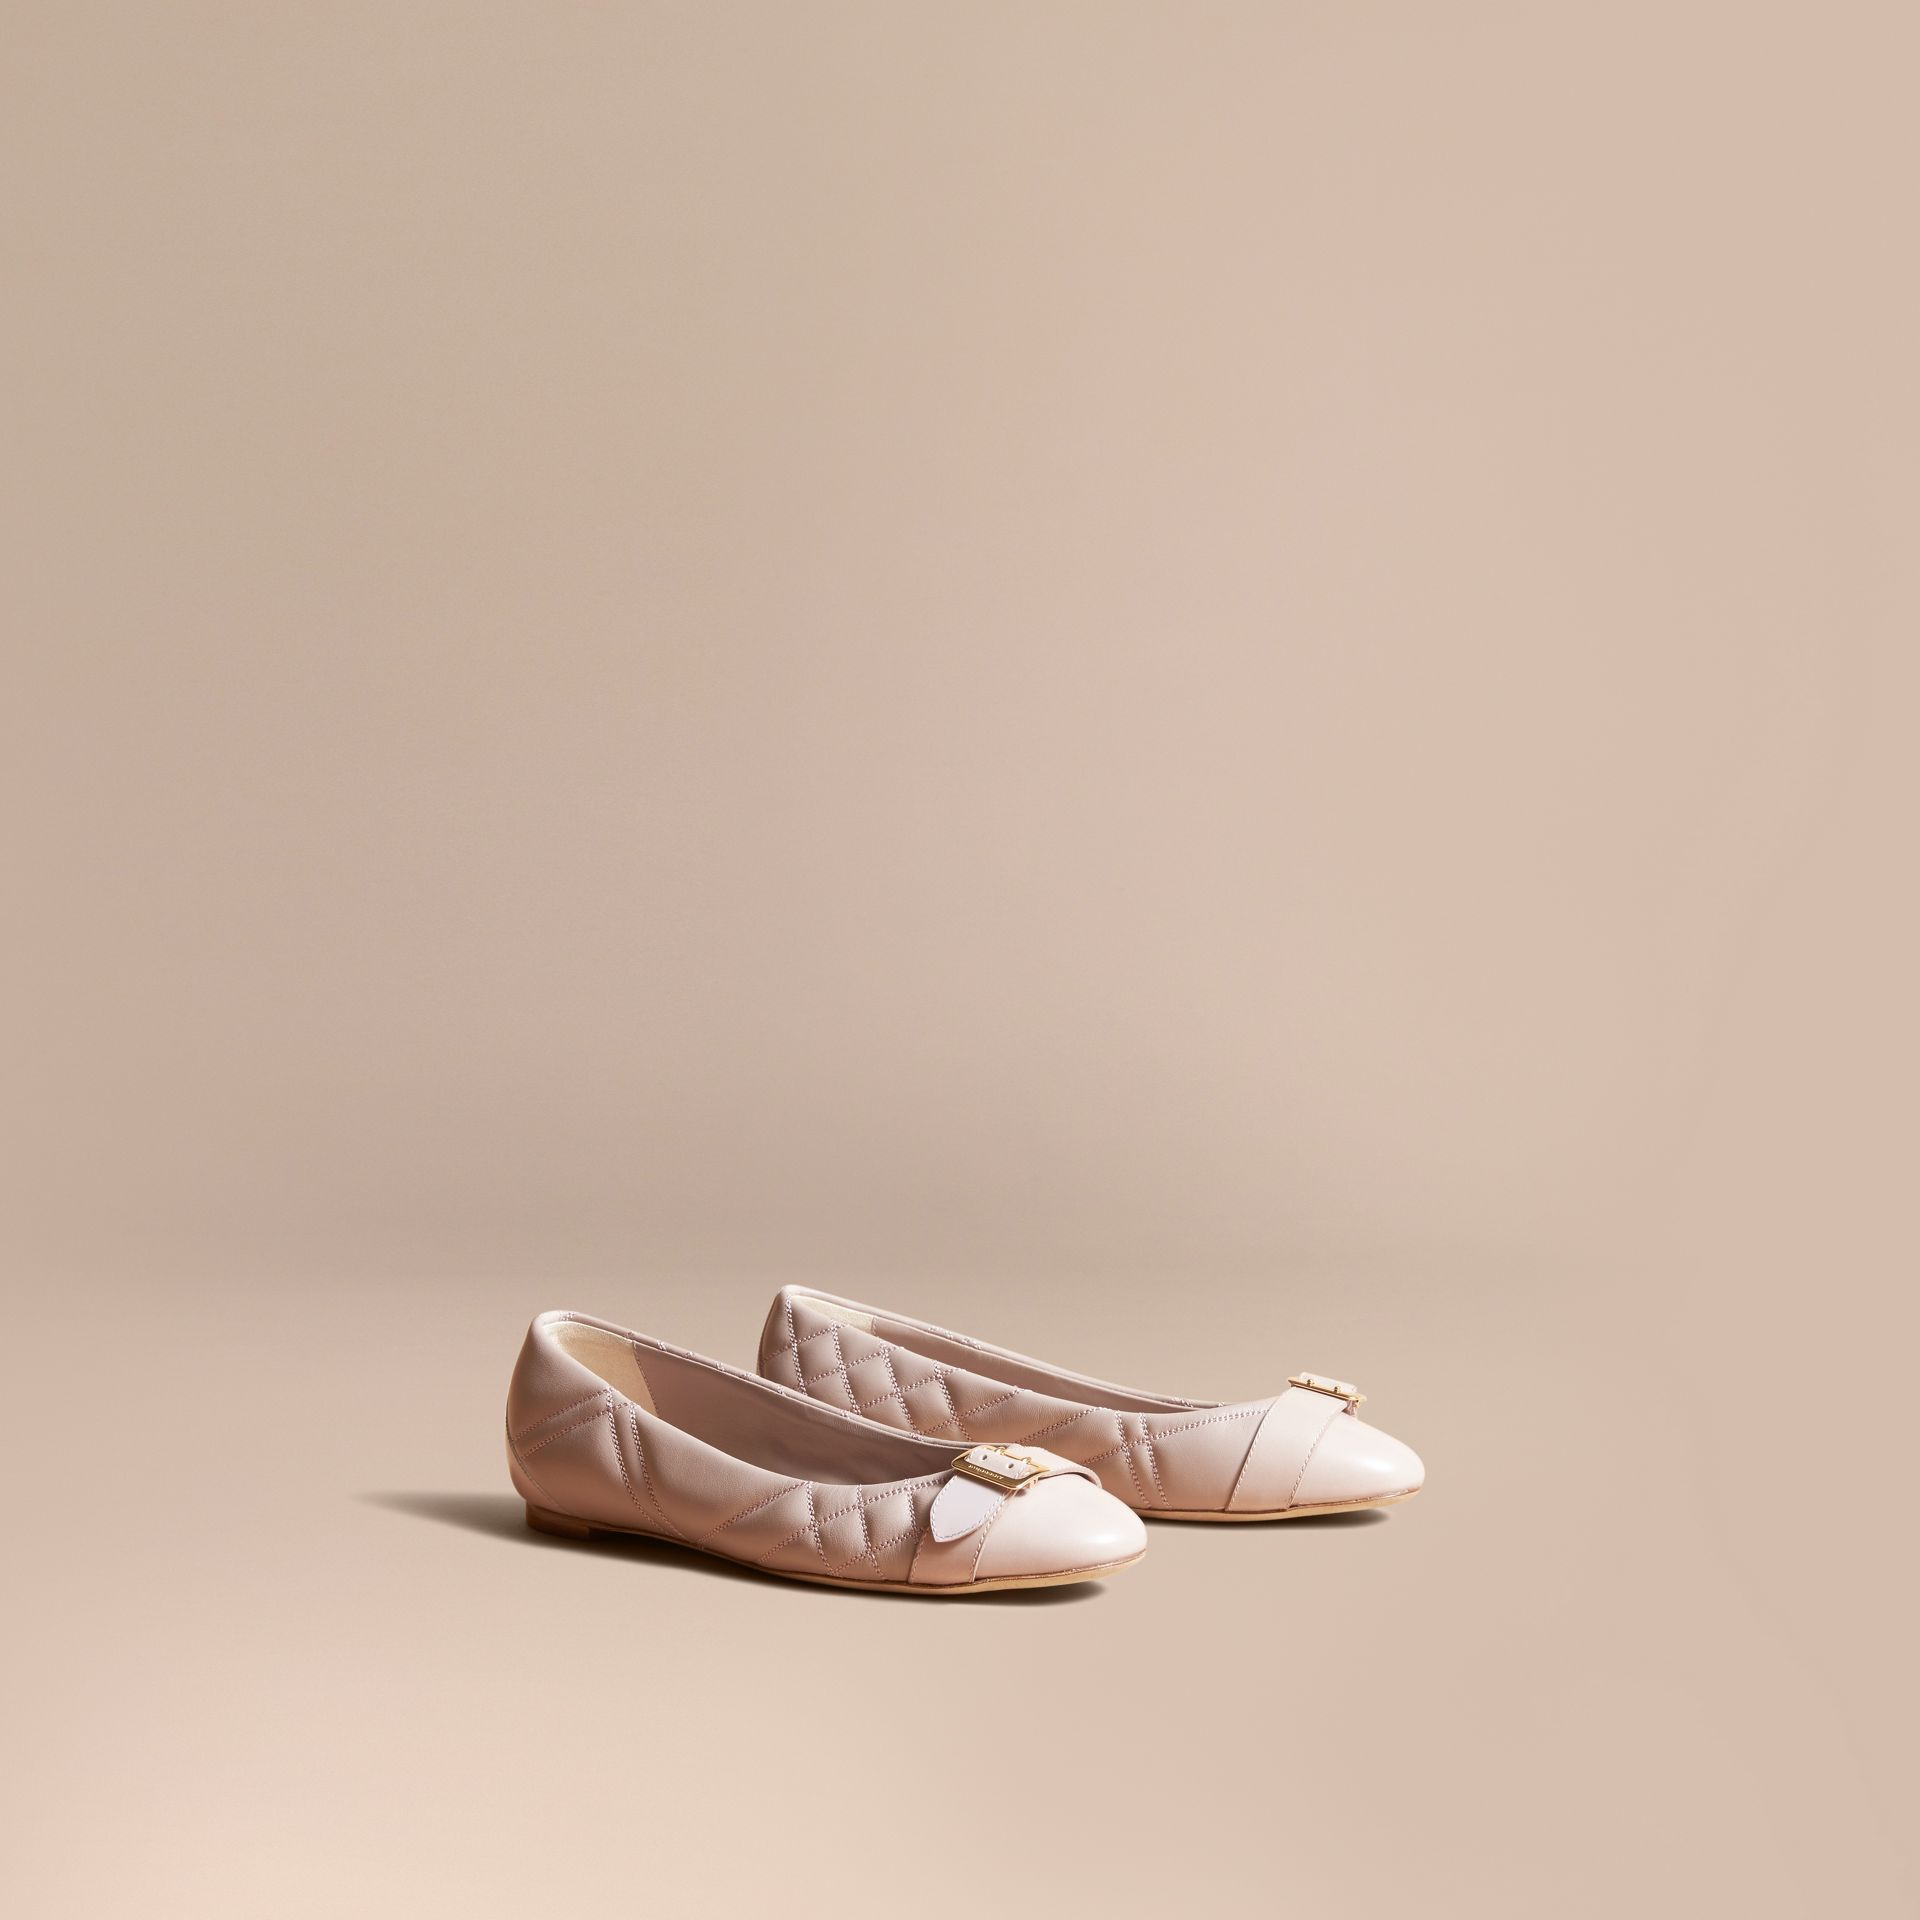 Buckle Detail Quilted Lambskin Leather Ballerinas in Ivory Pink - Women | Burberry Singapore - gallery image 1